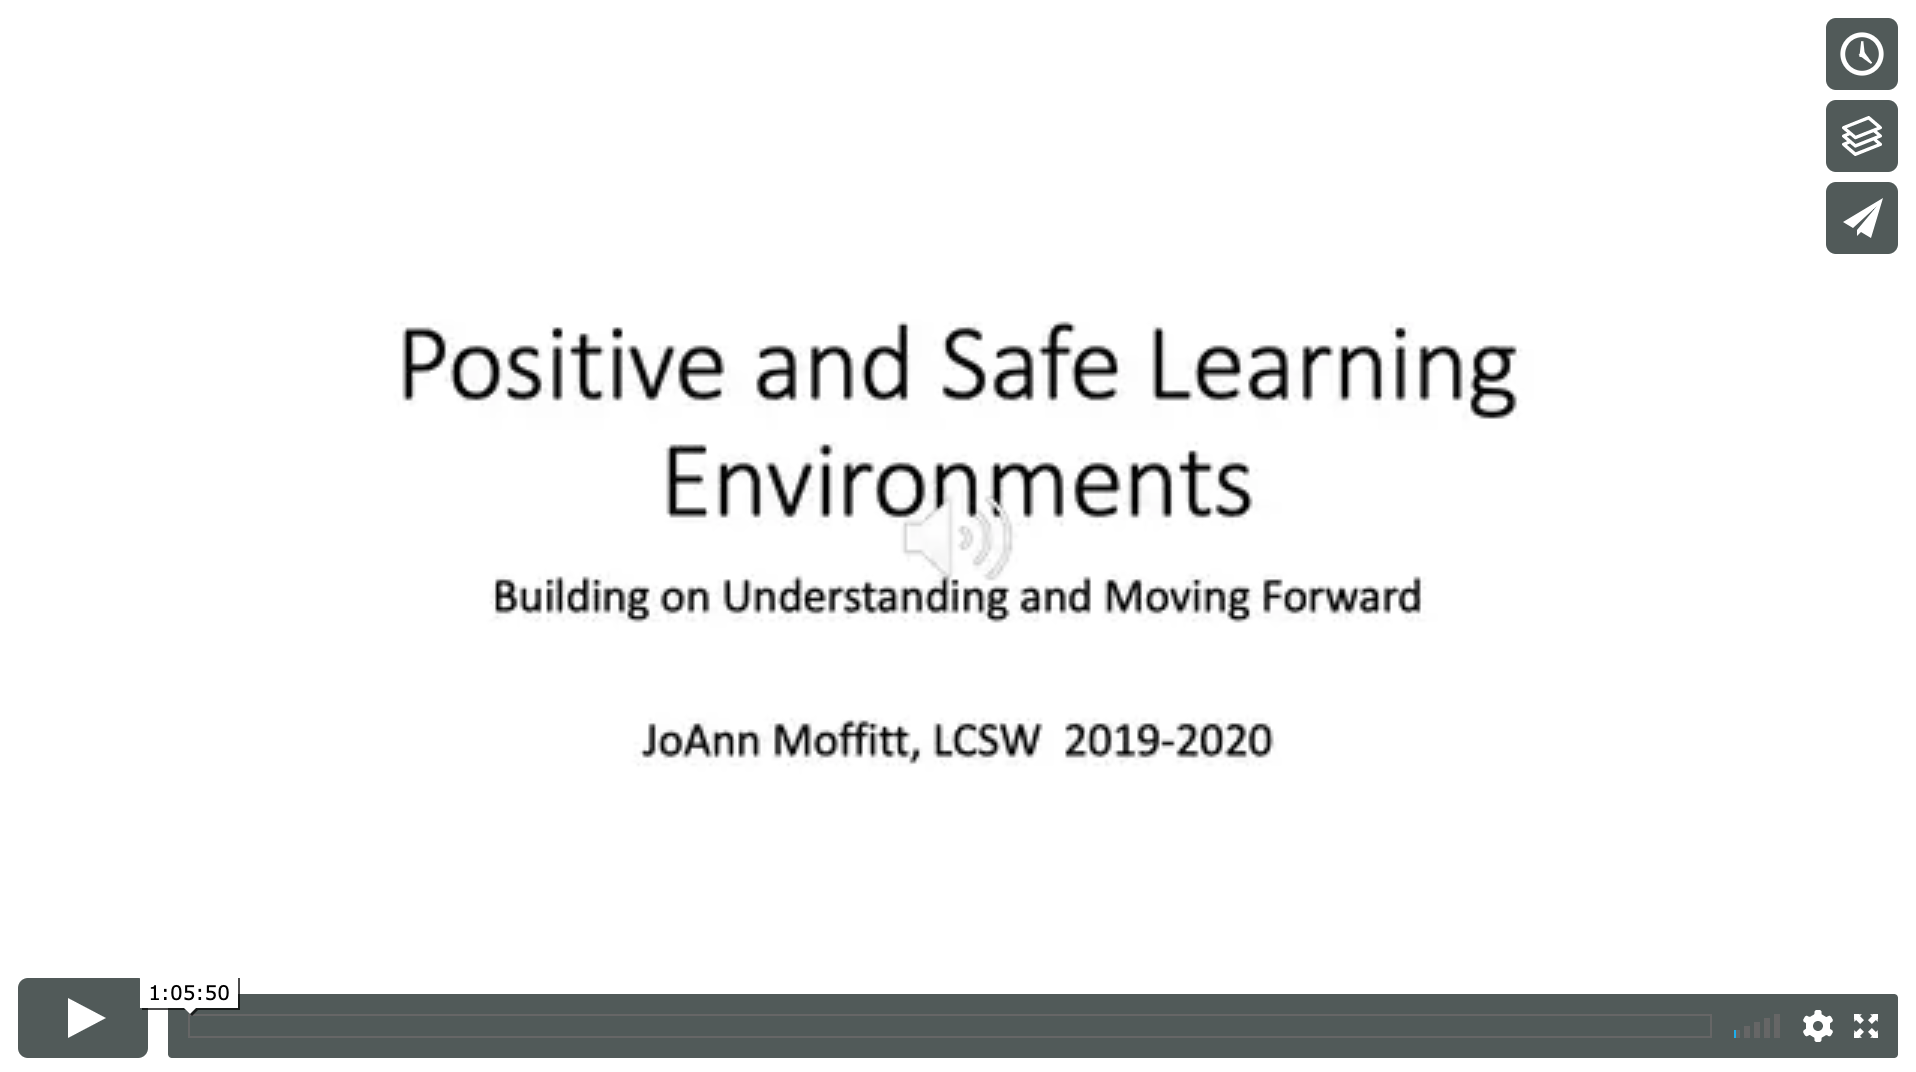 Positive and Safe Learning